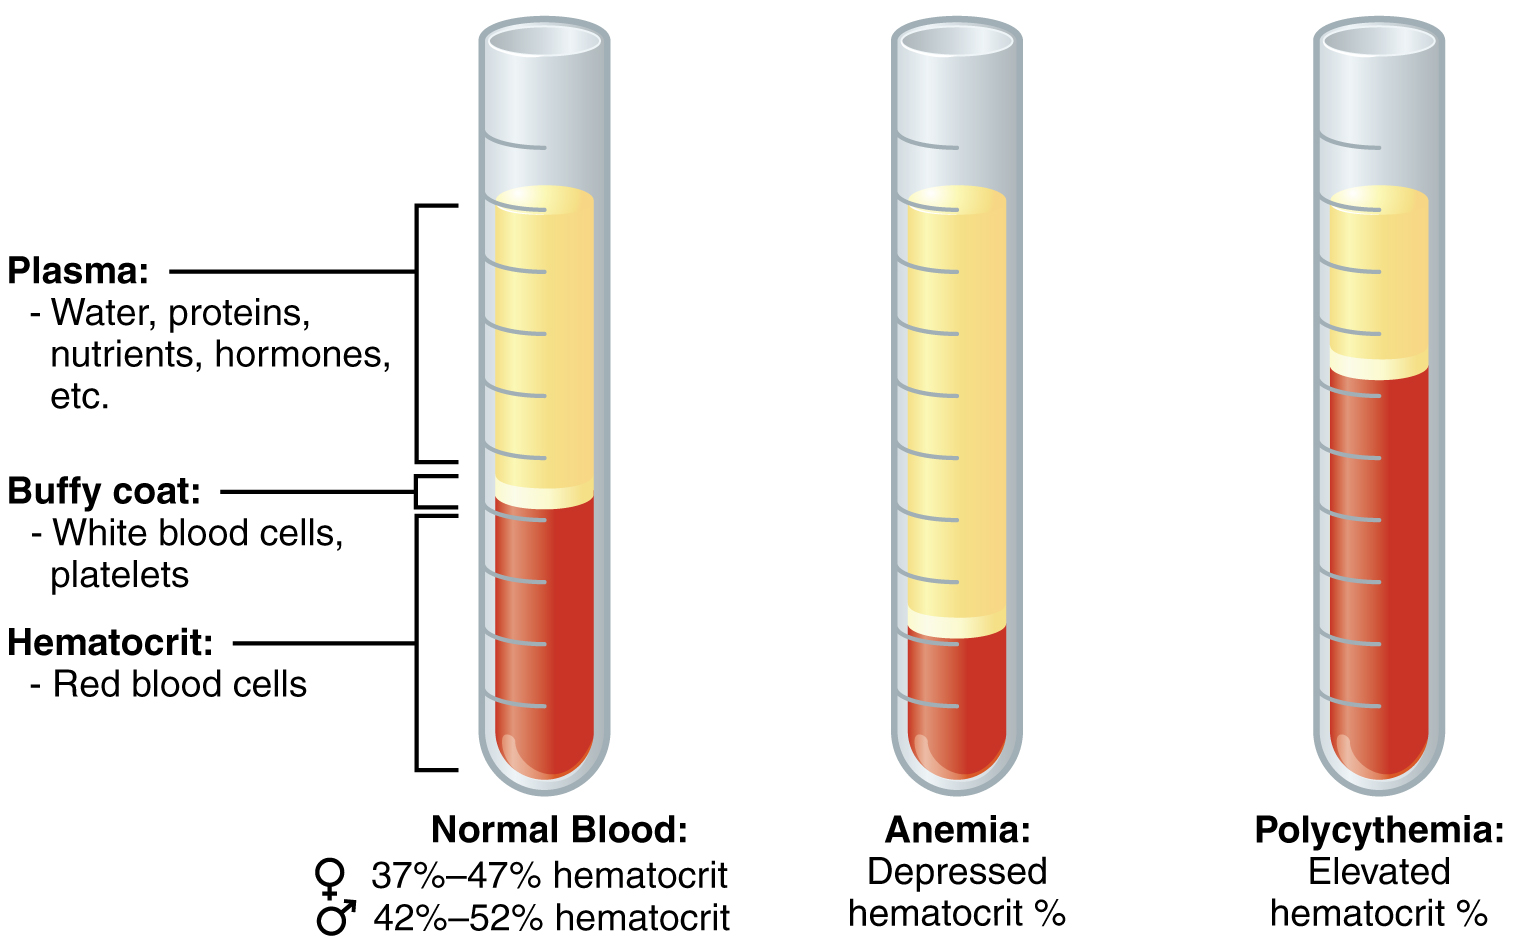 This figure shows three test tubes with a red and yellow liquid in them. The left panel shows normal blood, the center panel shows anemic blood and the right panel shows polycythemic blood.